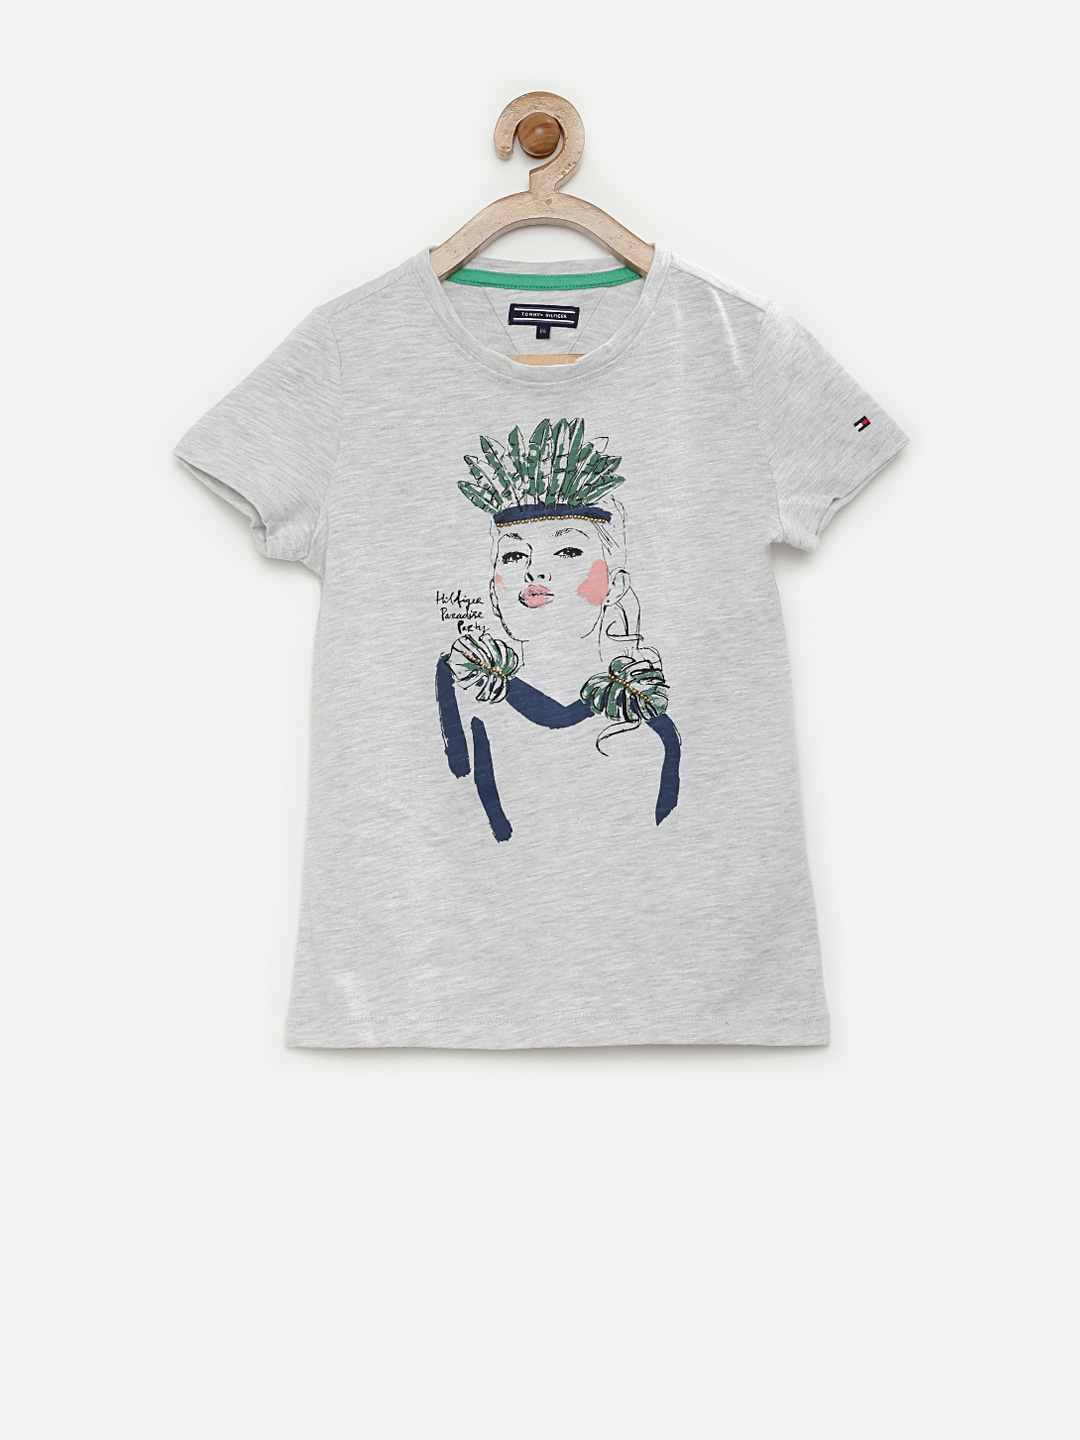 89604134 T-Shirts - Buy TShirt For Men, Women & Kids Online in India | Myntra